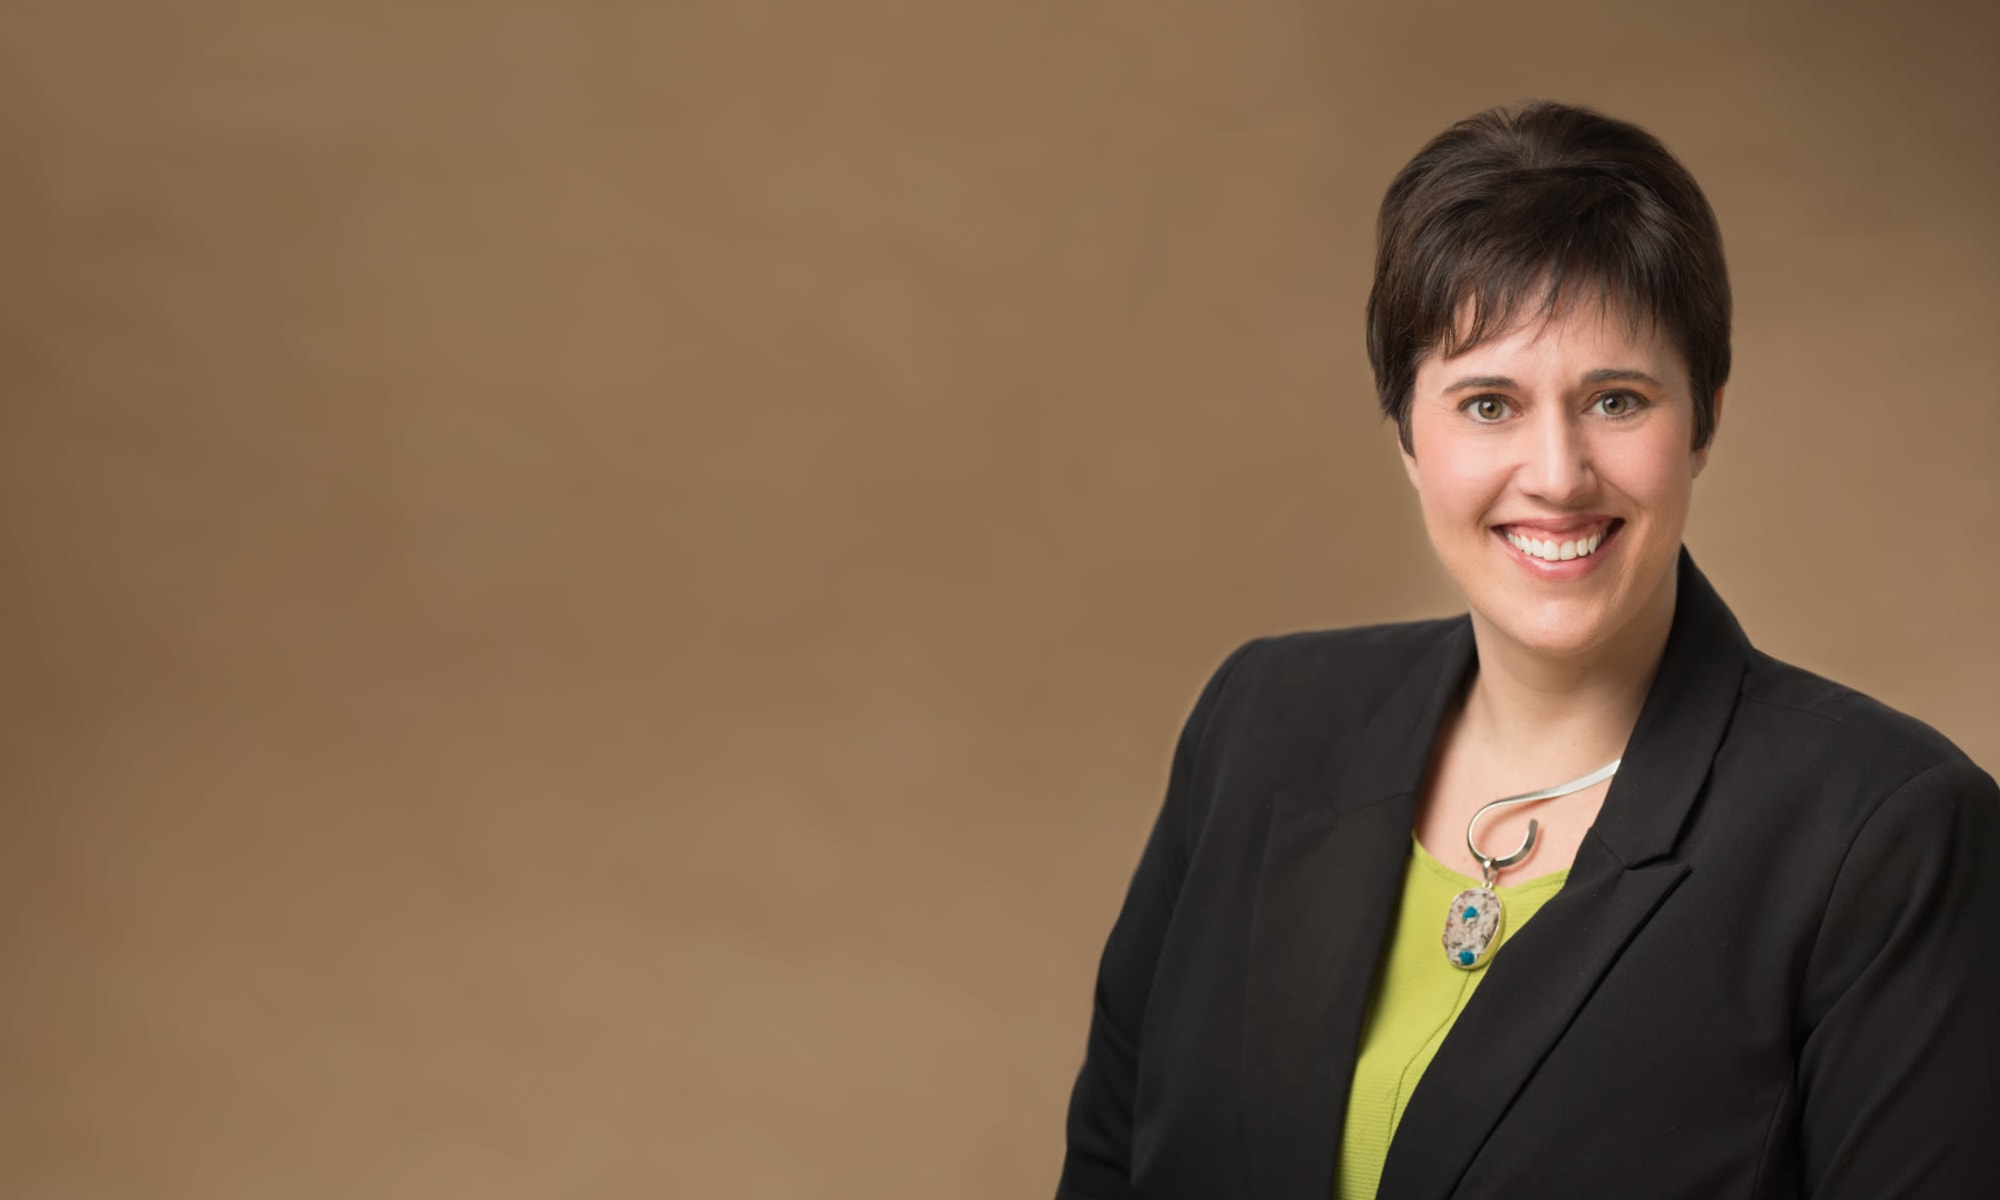 Wendy Schrag at Touchmark Central Office in Beaverton, Oregon